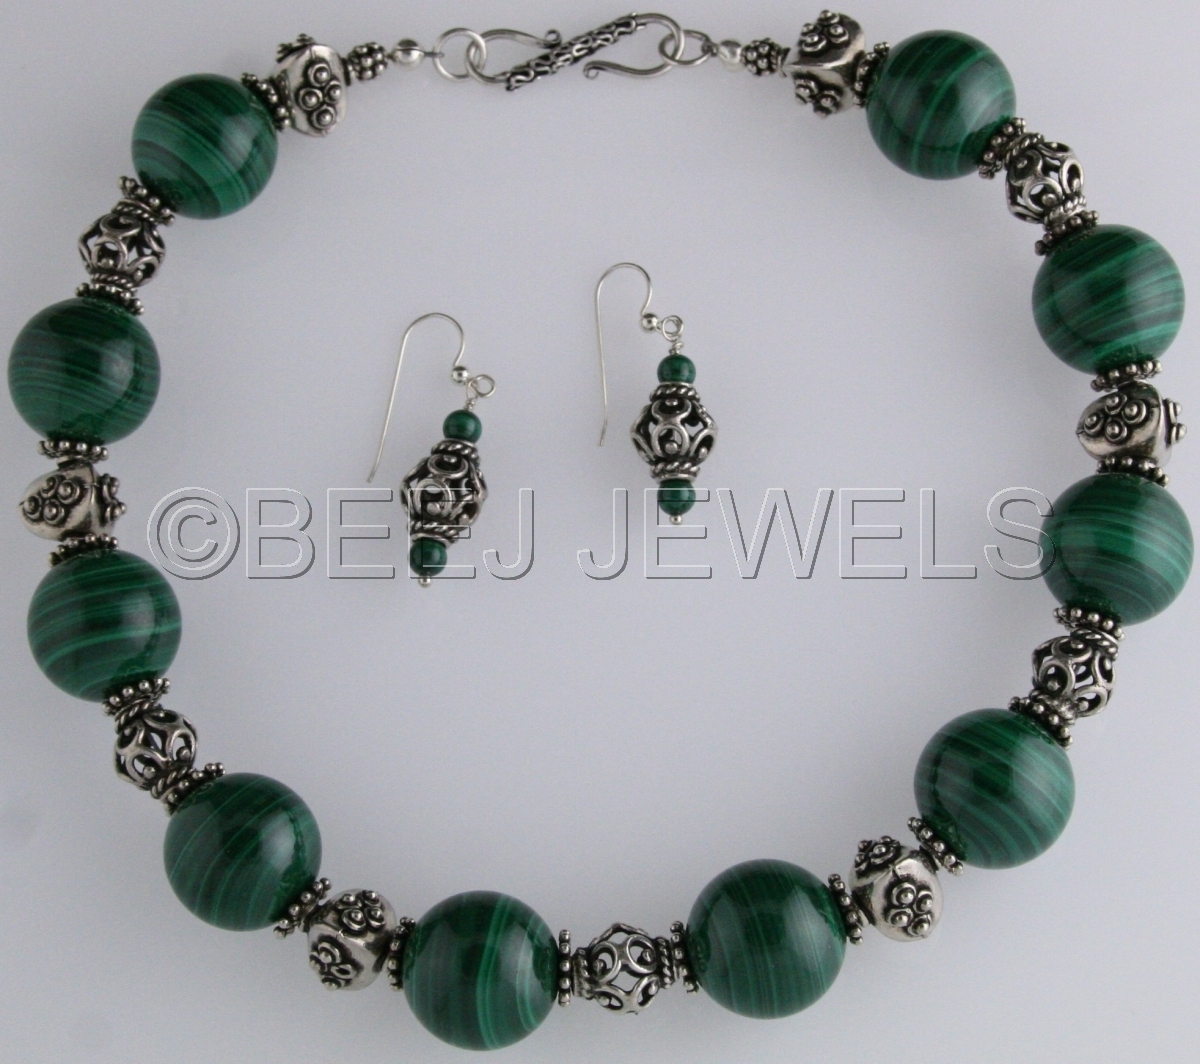 Green Malachite with Large Ornate Bali Silver Bead Necklace _ALULA AUSTRALIS (large view)